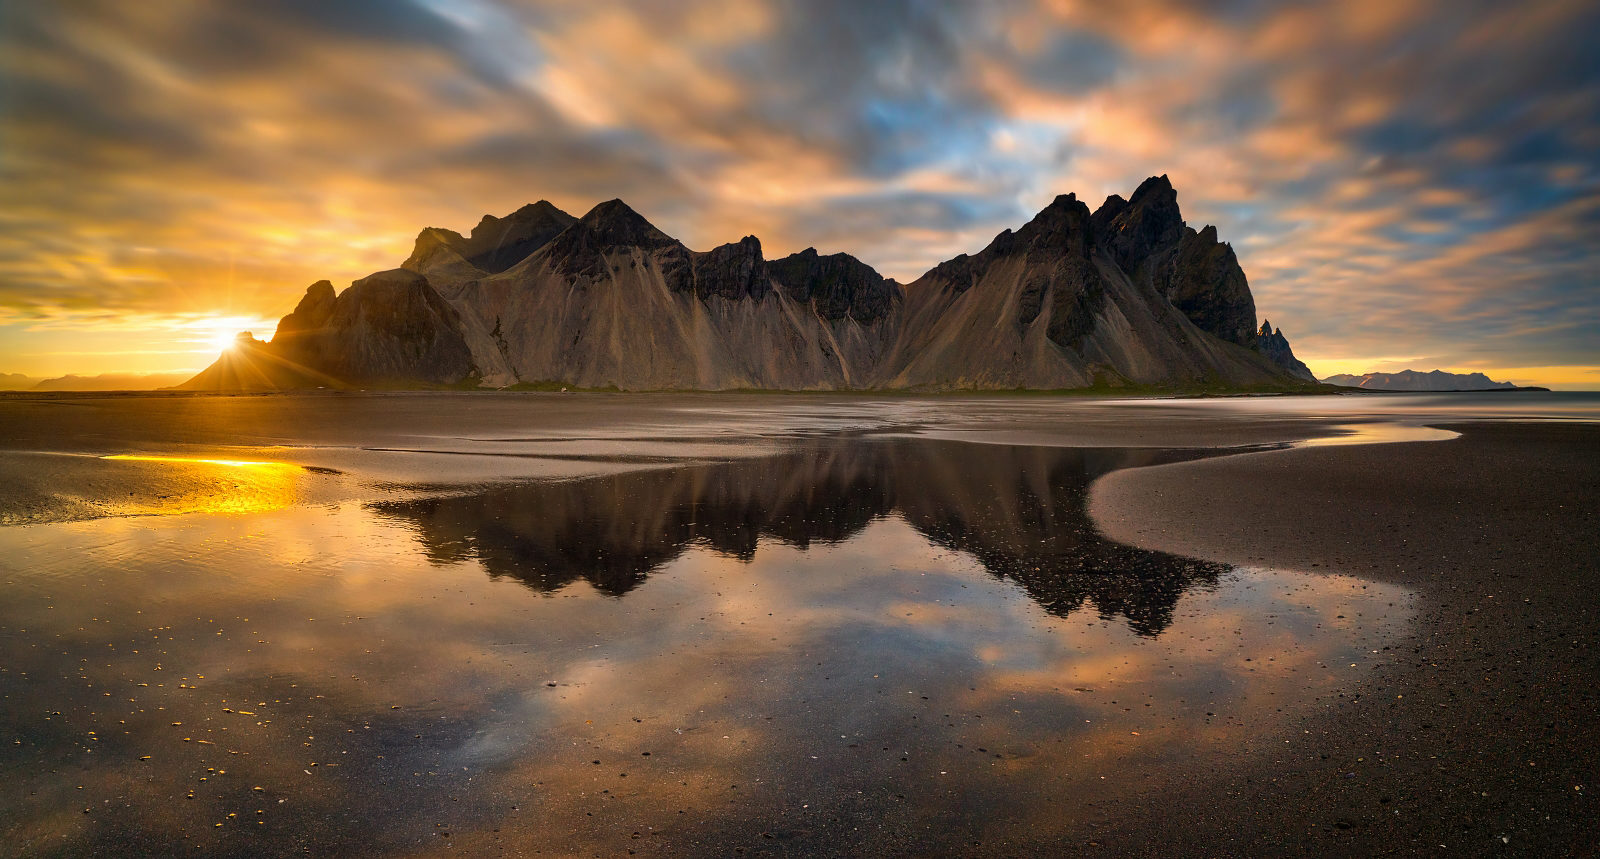 Vestrahorn - Outdoor Photographer: www.outdoorphotographer.com/photo-contests/great-outdoors/entry...